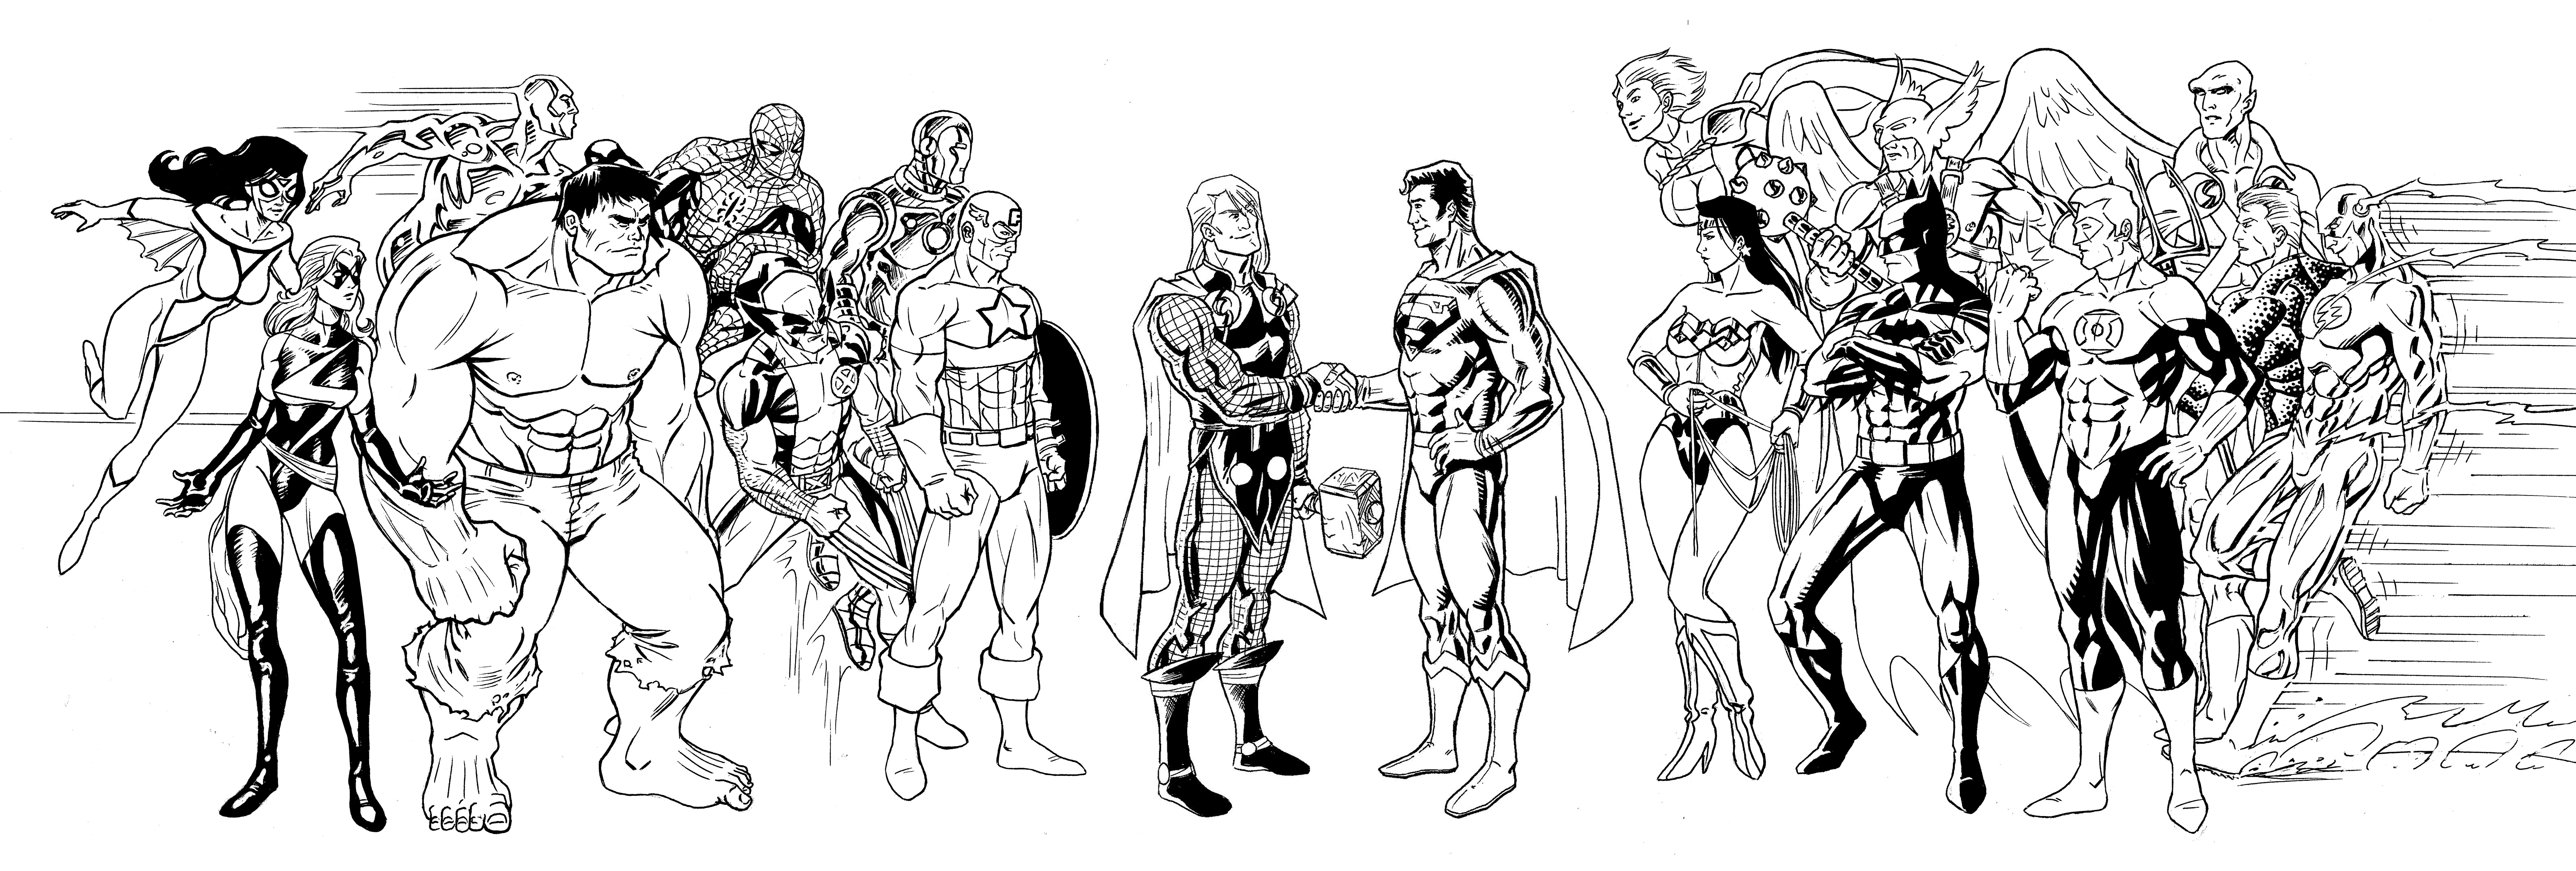 coloring pages and justice league - photo#32